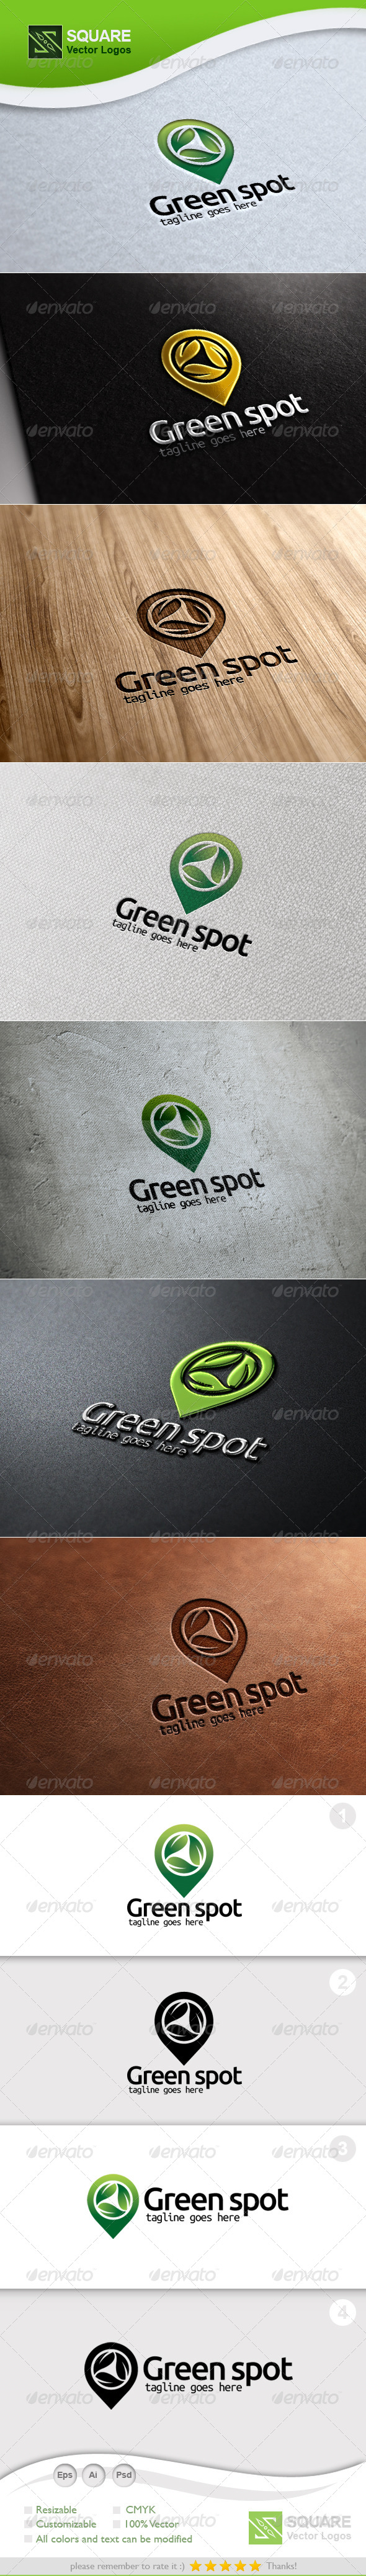 GraphicRiver Leafs Locator Vector Logo Template 5847922